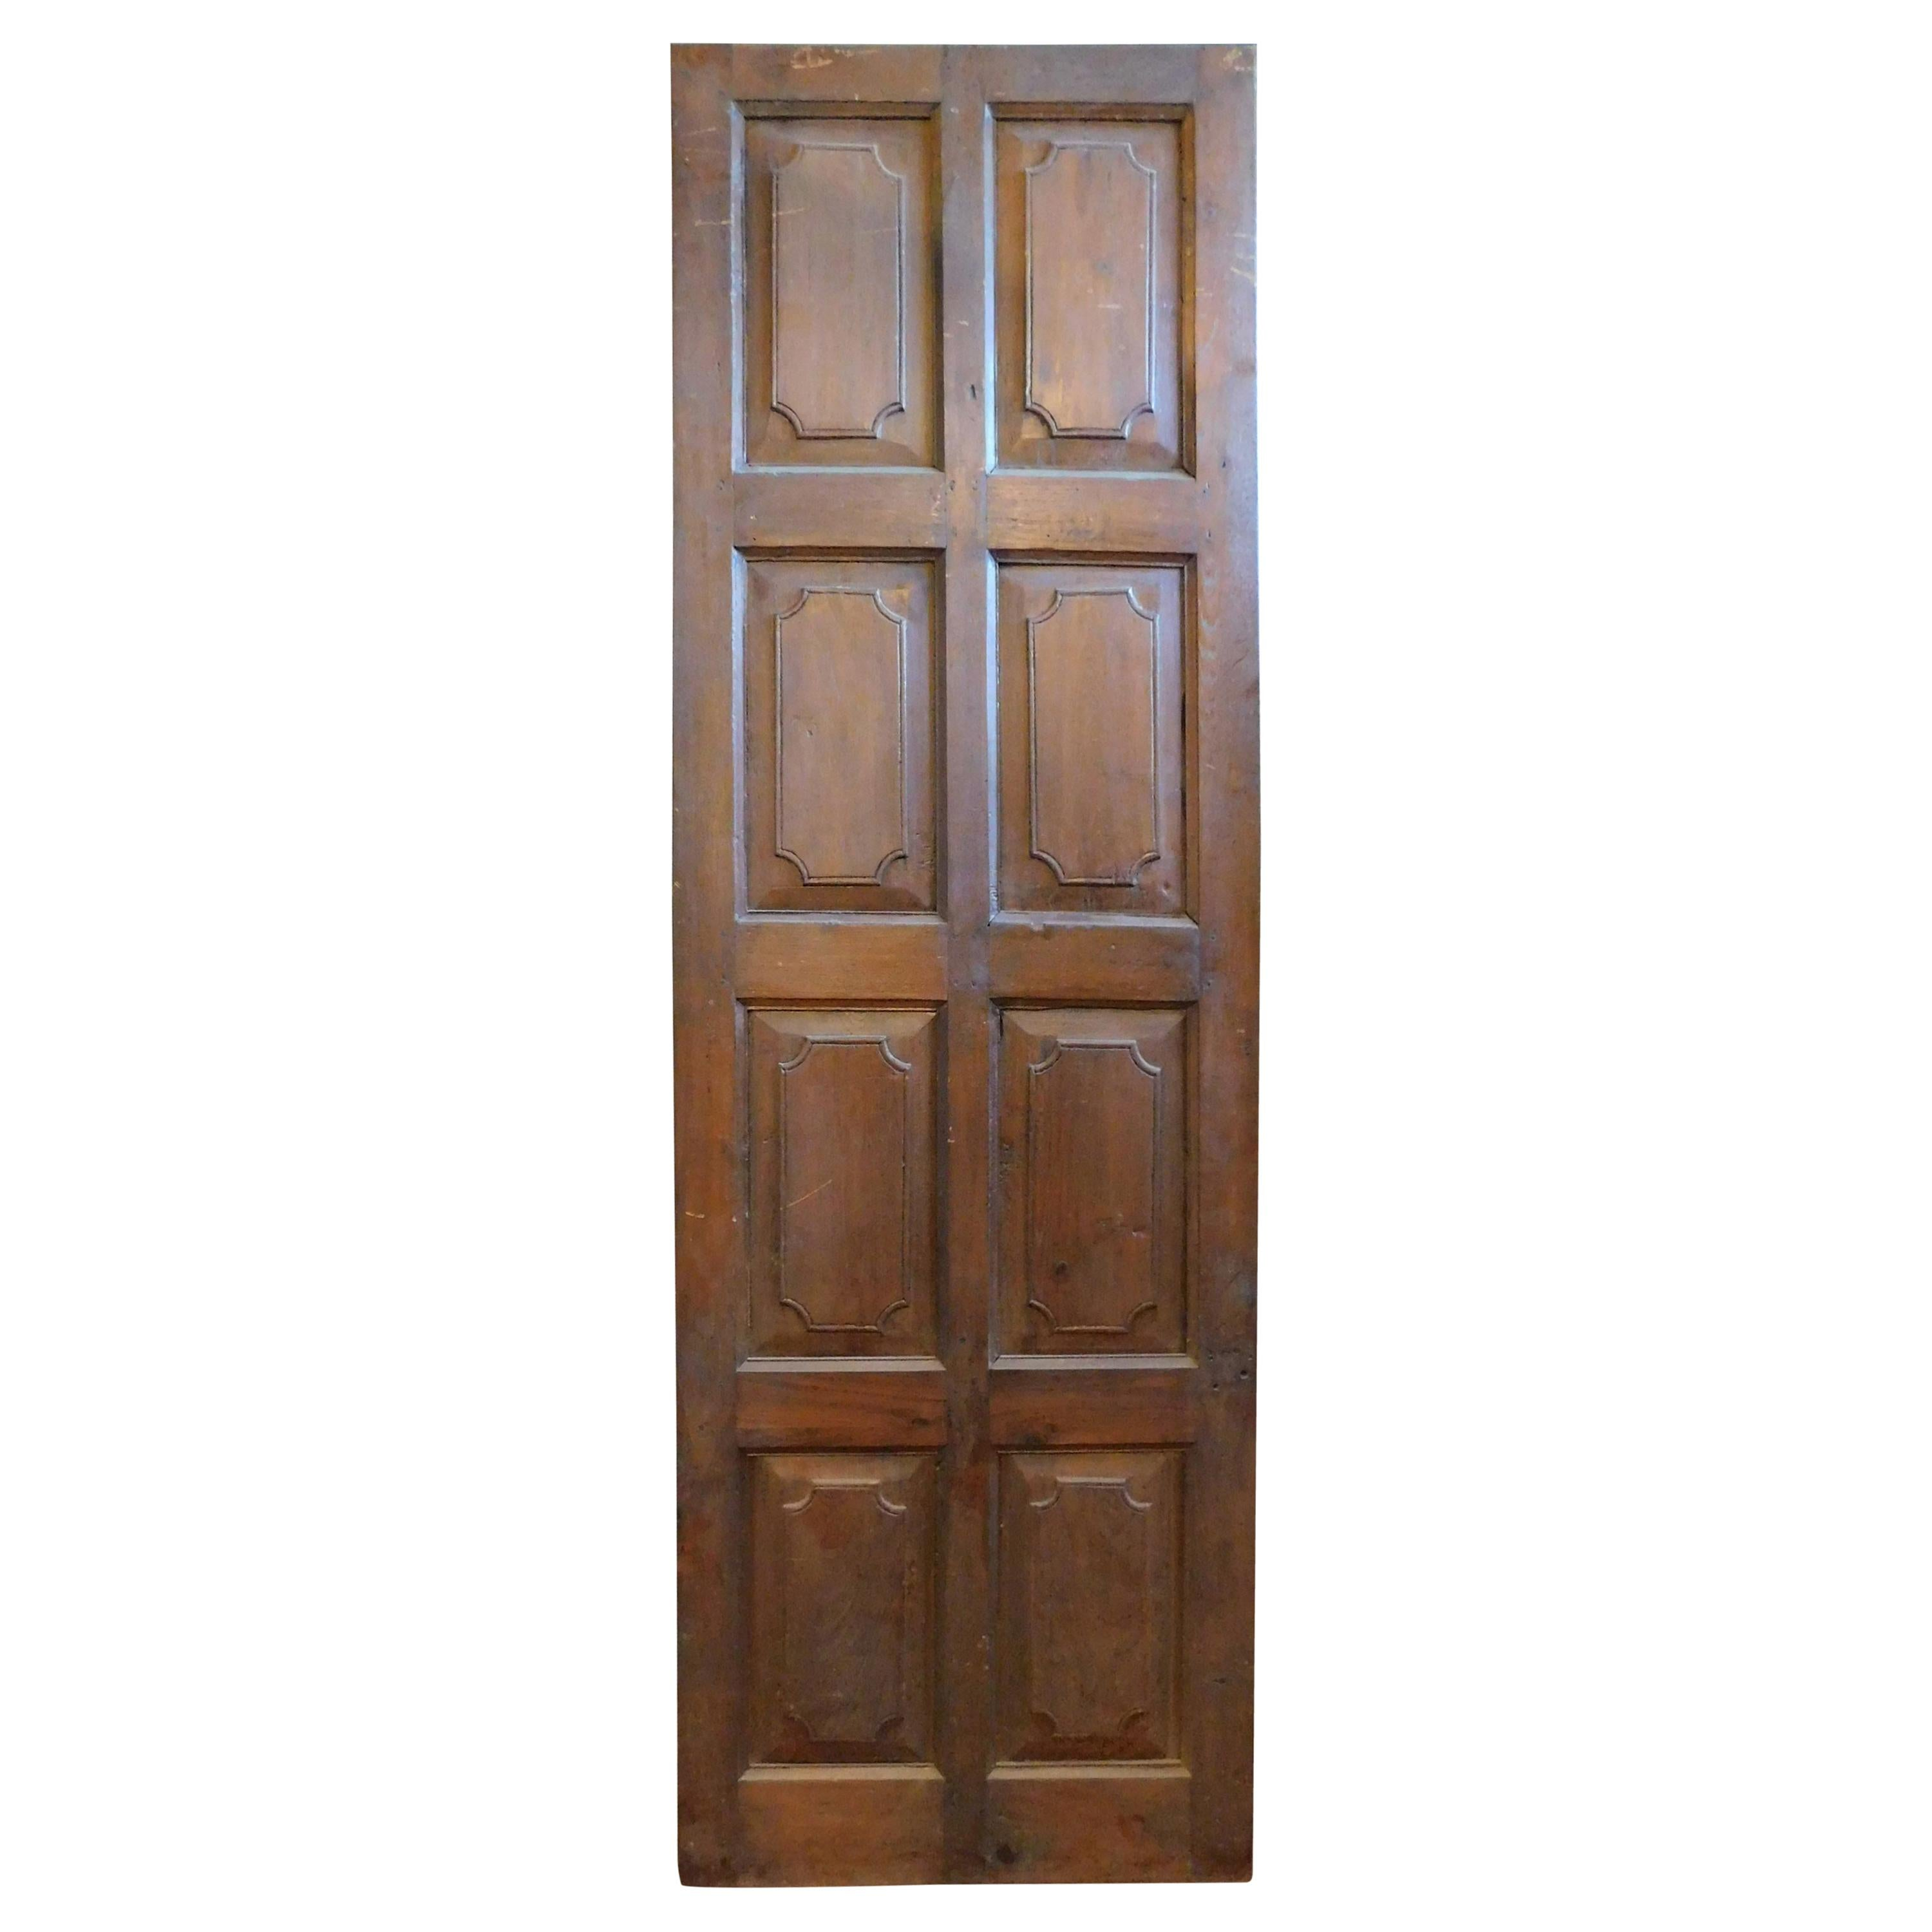 Antique Door in Solid Brown Walnut, Carved Double-Sided, 18th Century, Italy